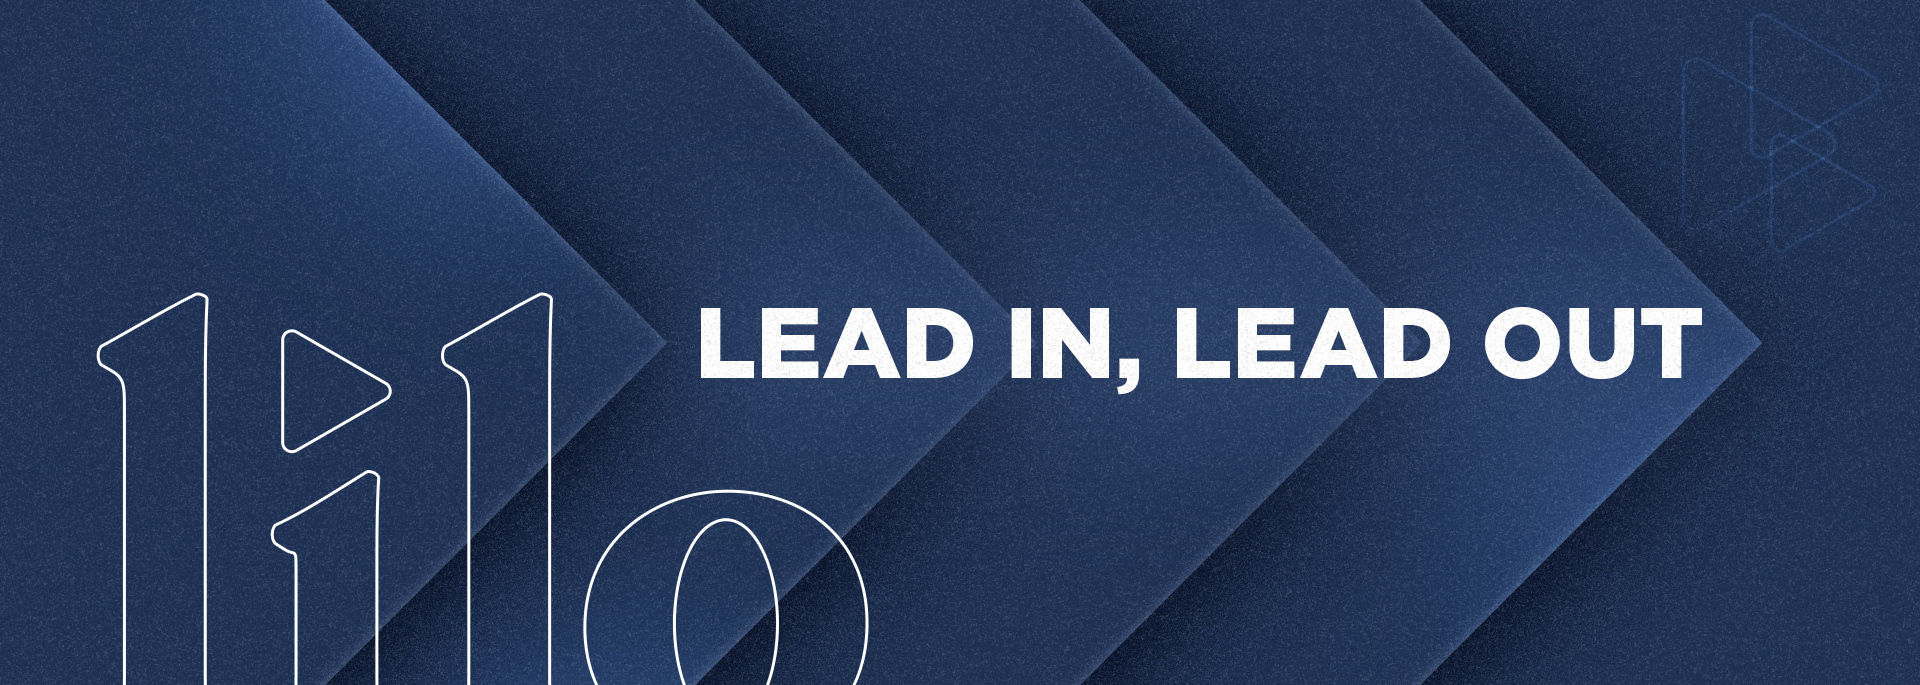 Lead In, Lead Out